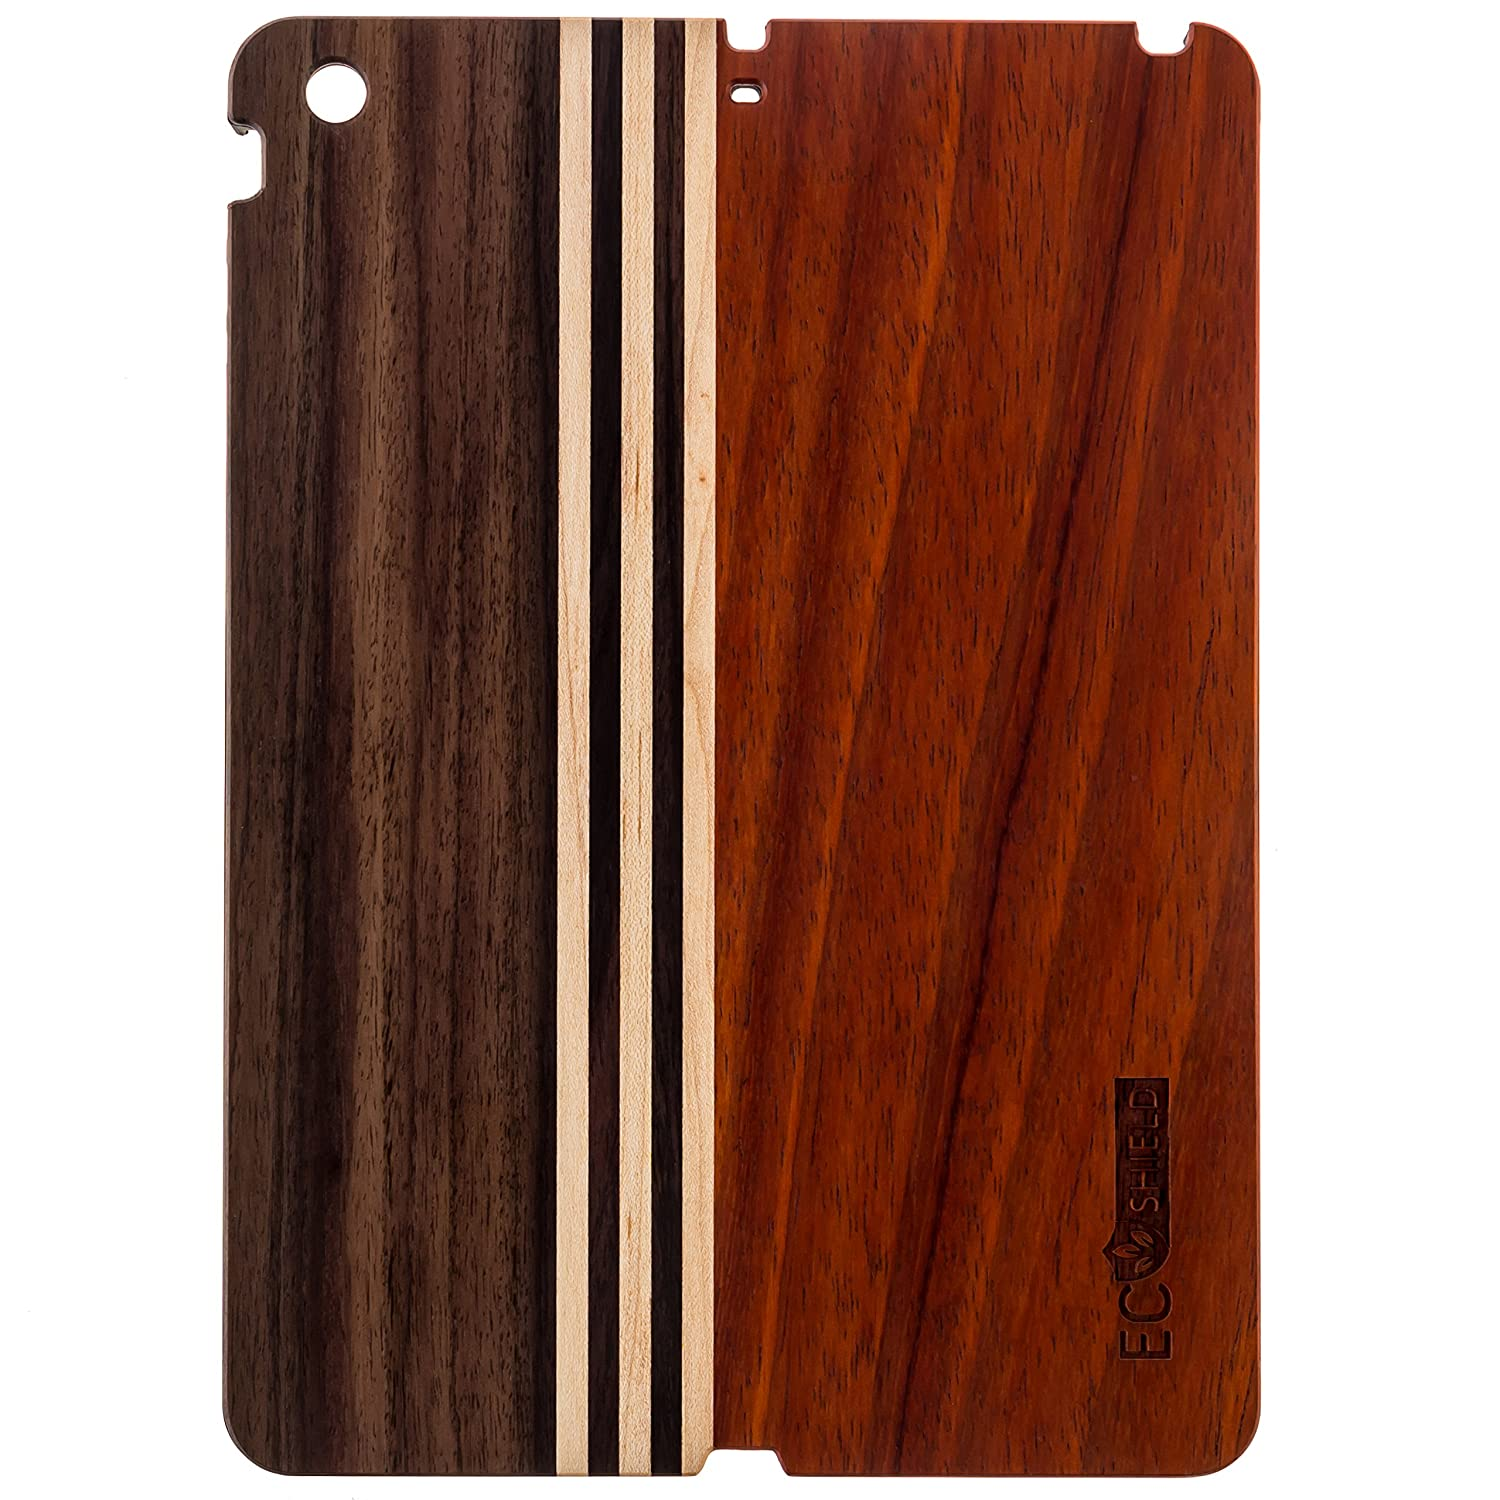 Impecca Eco Shield Natural Wood Case for iPad Air (PCBIA302)